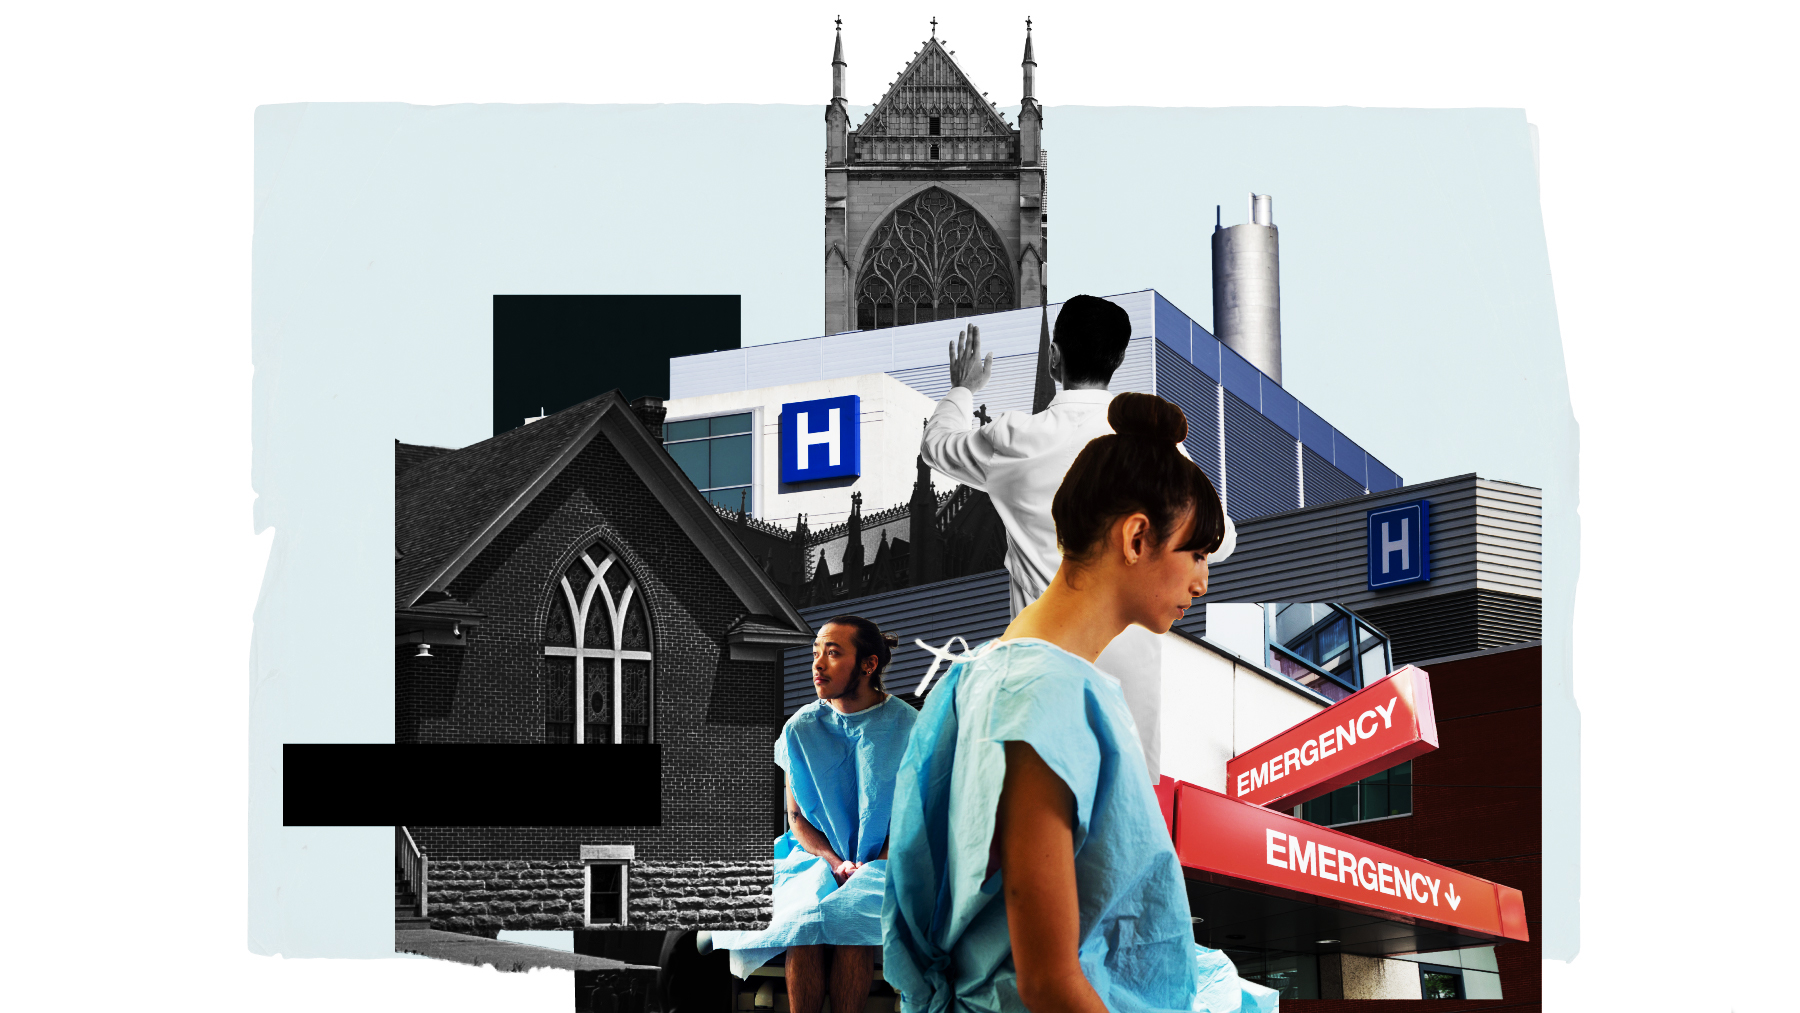 A photo illustration of medical workers, a hospital, and a church.